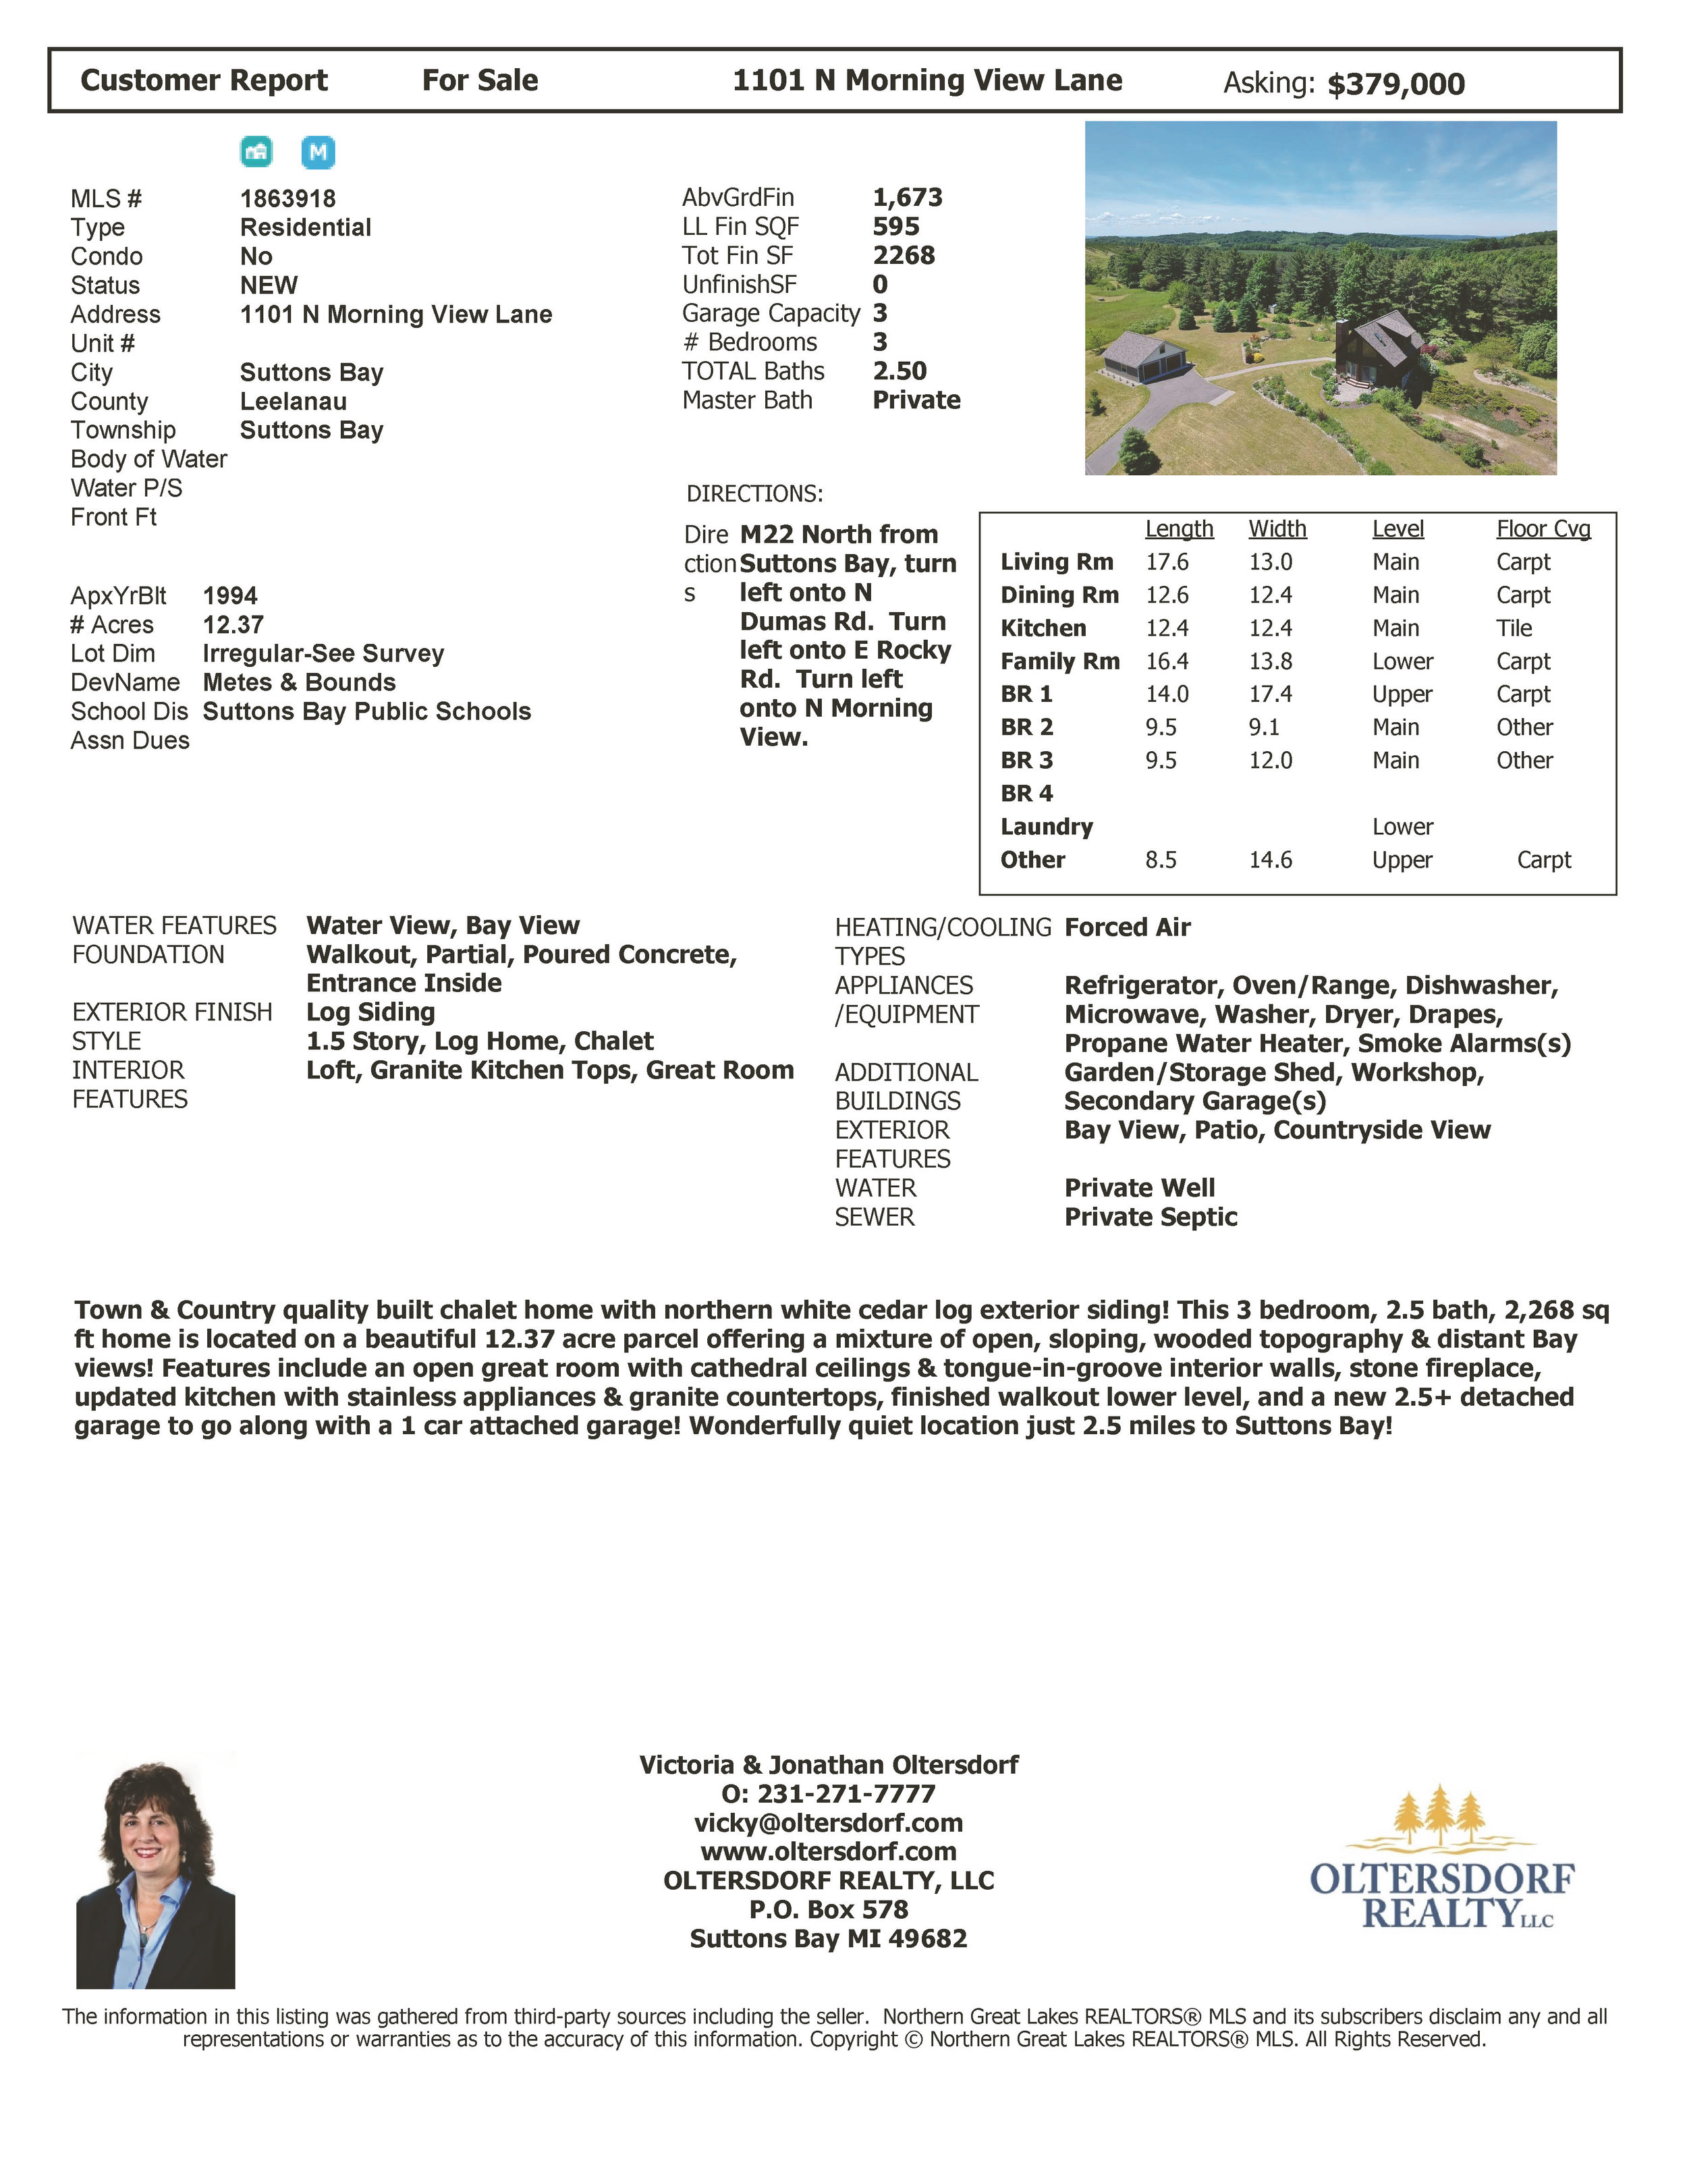 1101 N Morning View Lane, Suttons Bay – Marketing Packet For Sale by Oltersdorf Realty LLC (8).jpg